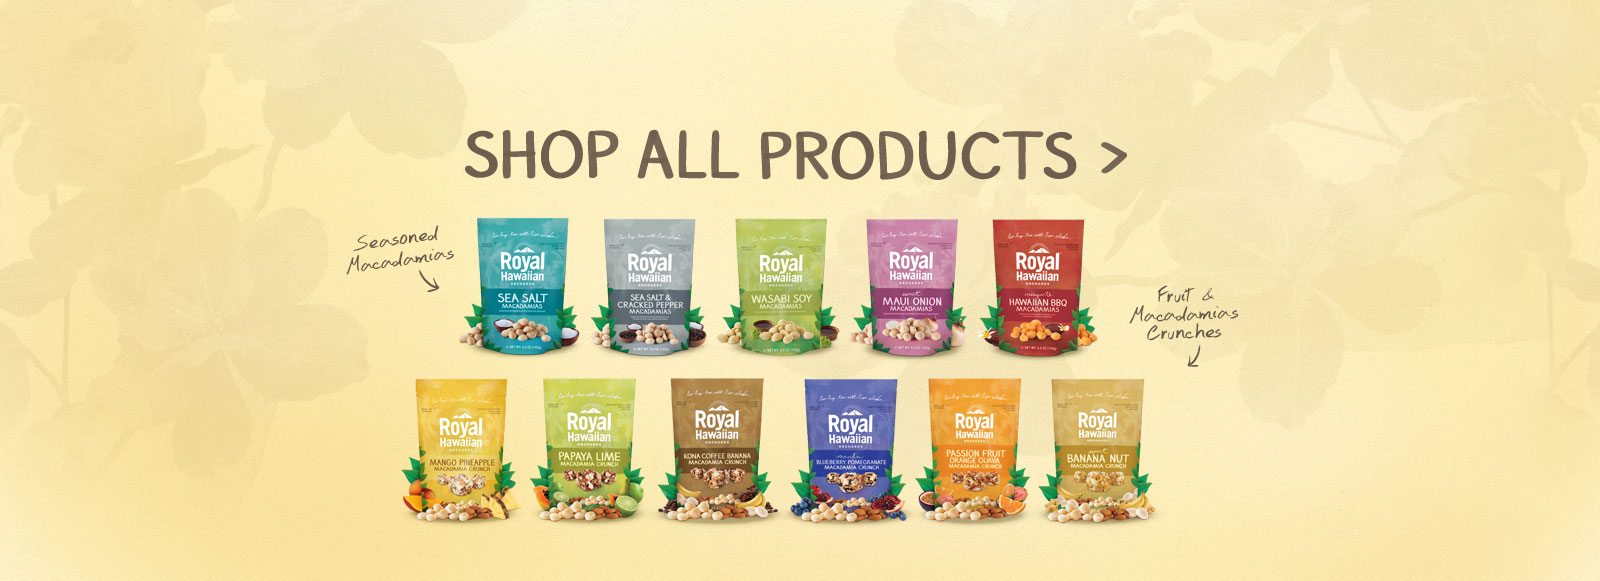 Shop Online For Seasoned and Macadamia Crunches